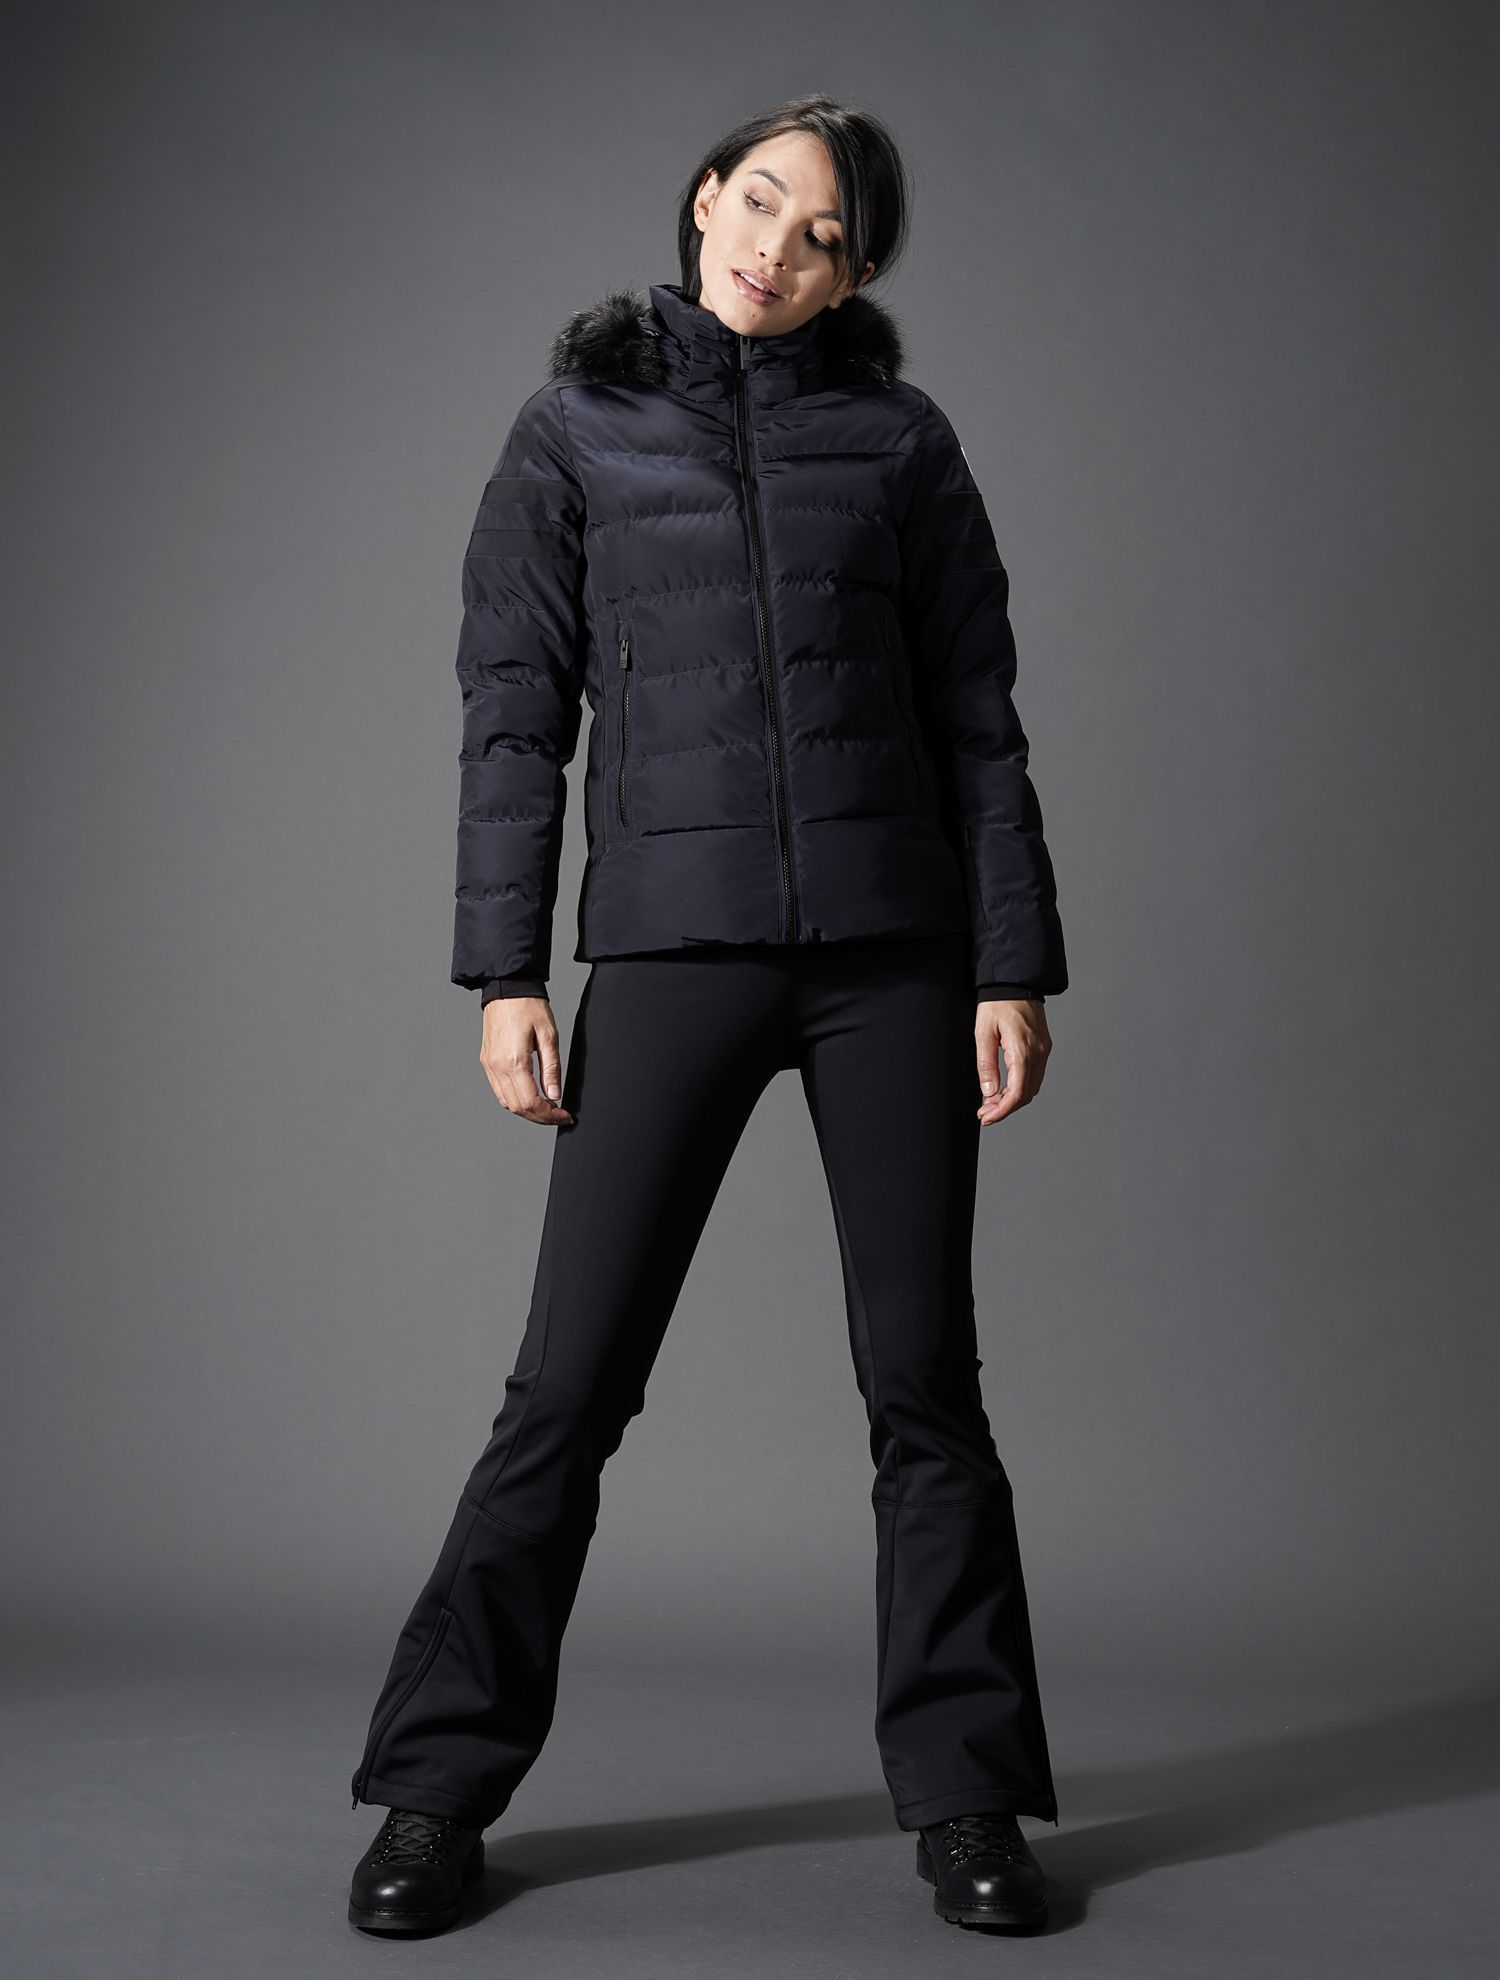 CASTELLANE SKI JACKET